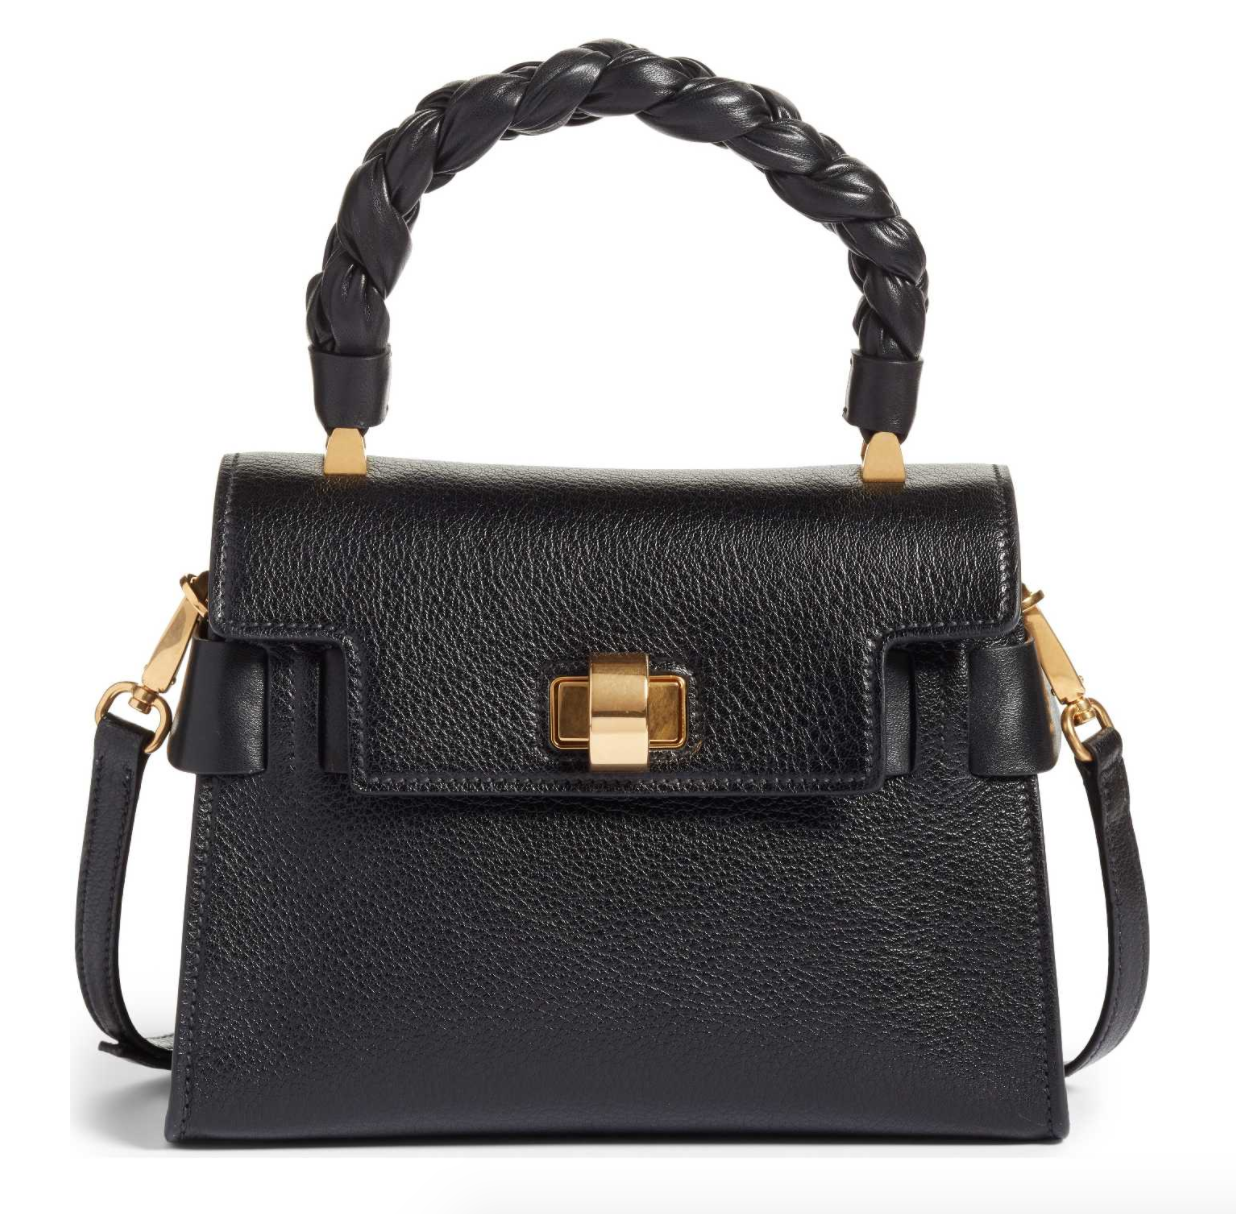 The Face Of Style: Wishlist Wednesday - Miu Miu Madras Leather Top Handle Satchel